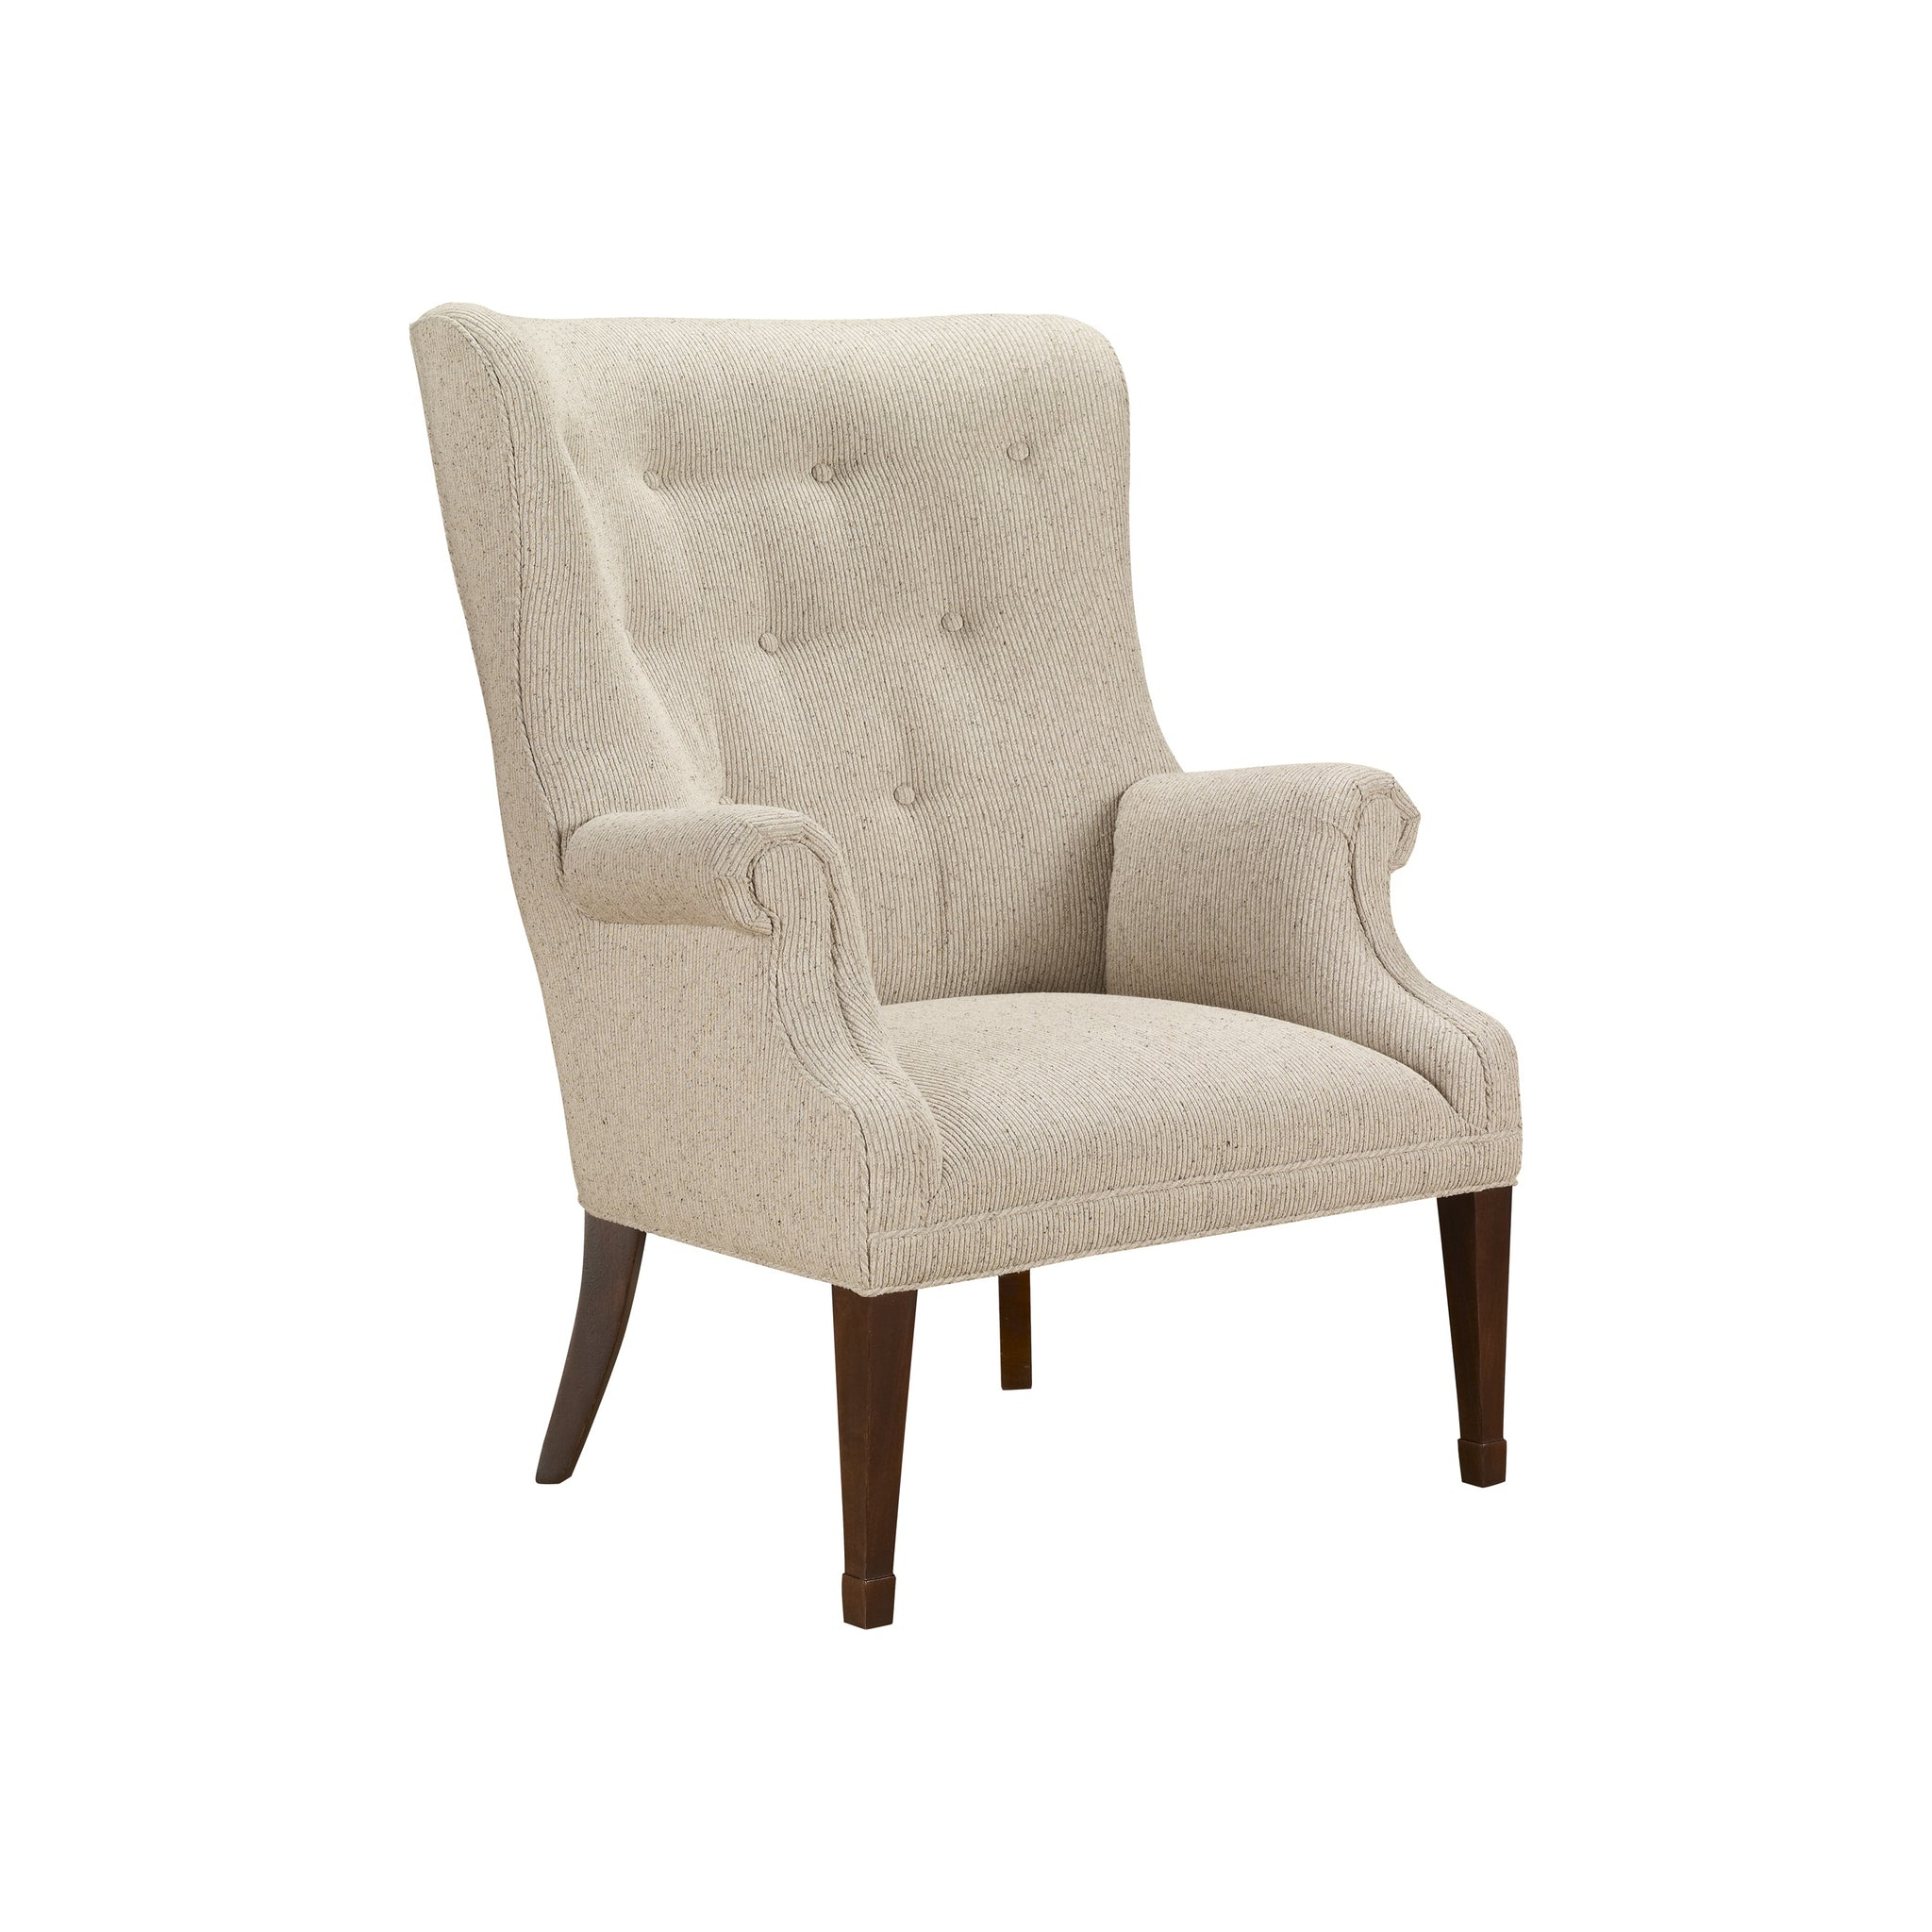 Isaac Wing Chair in natural